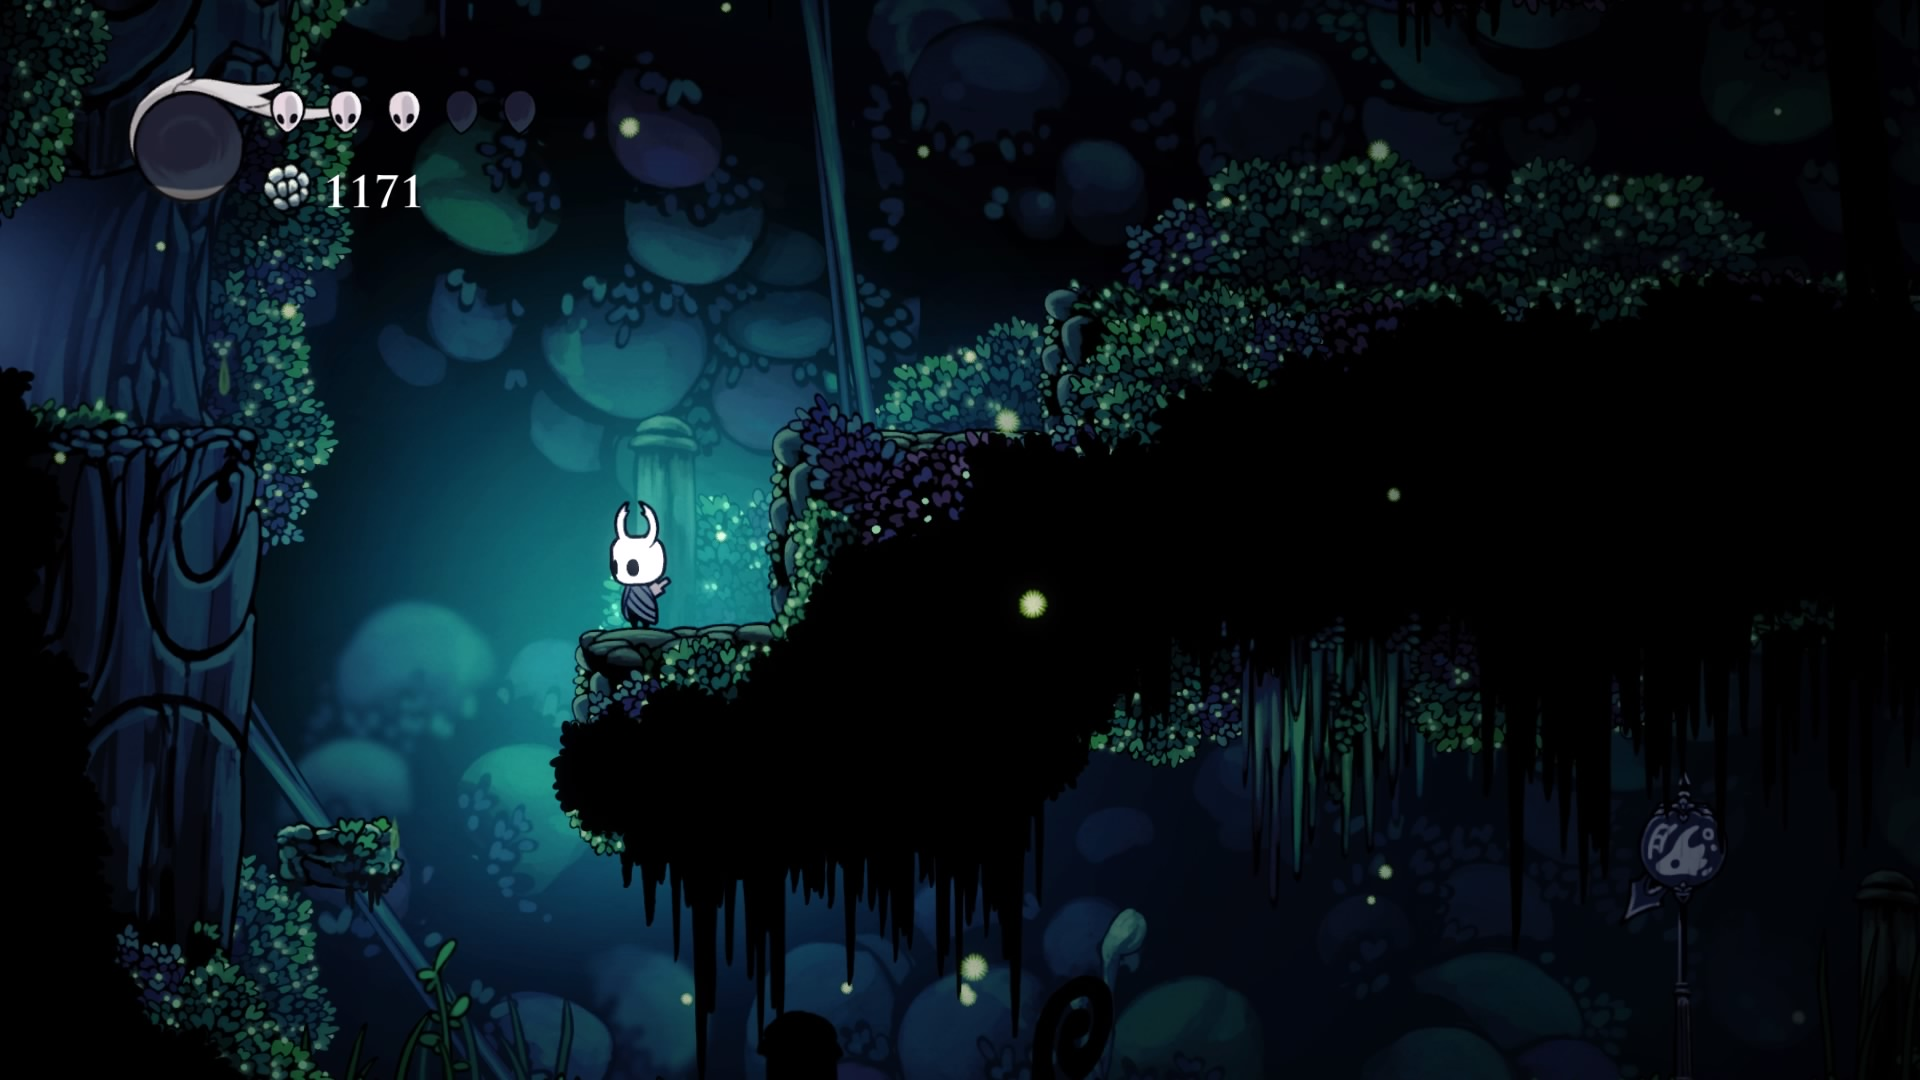 Hollow Knight 20191009162413 - Hollow Knight, guida e lore: Verdevia II